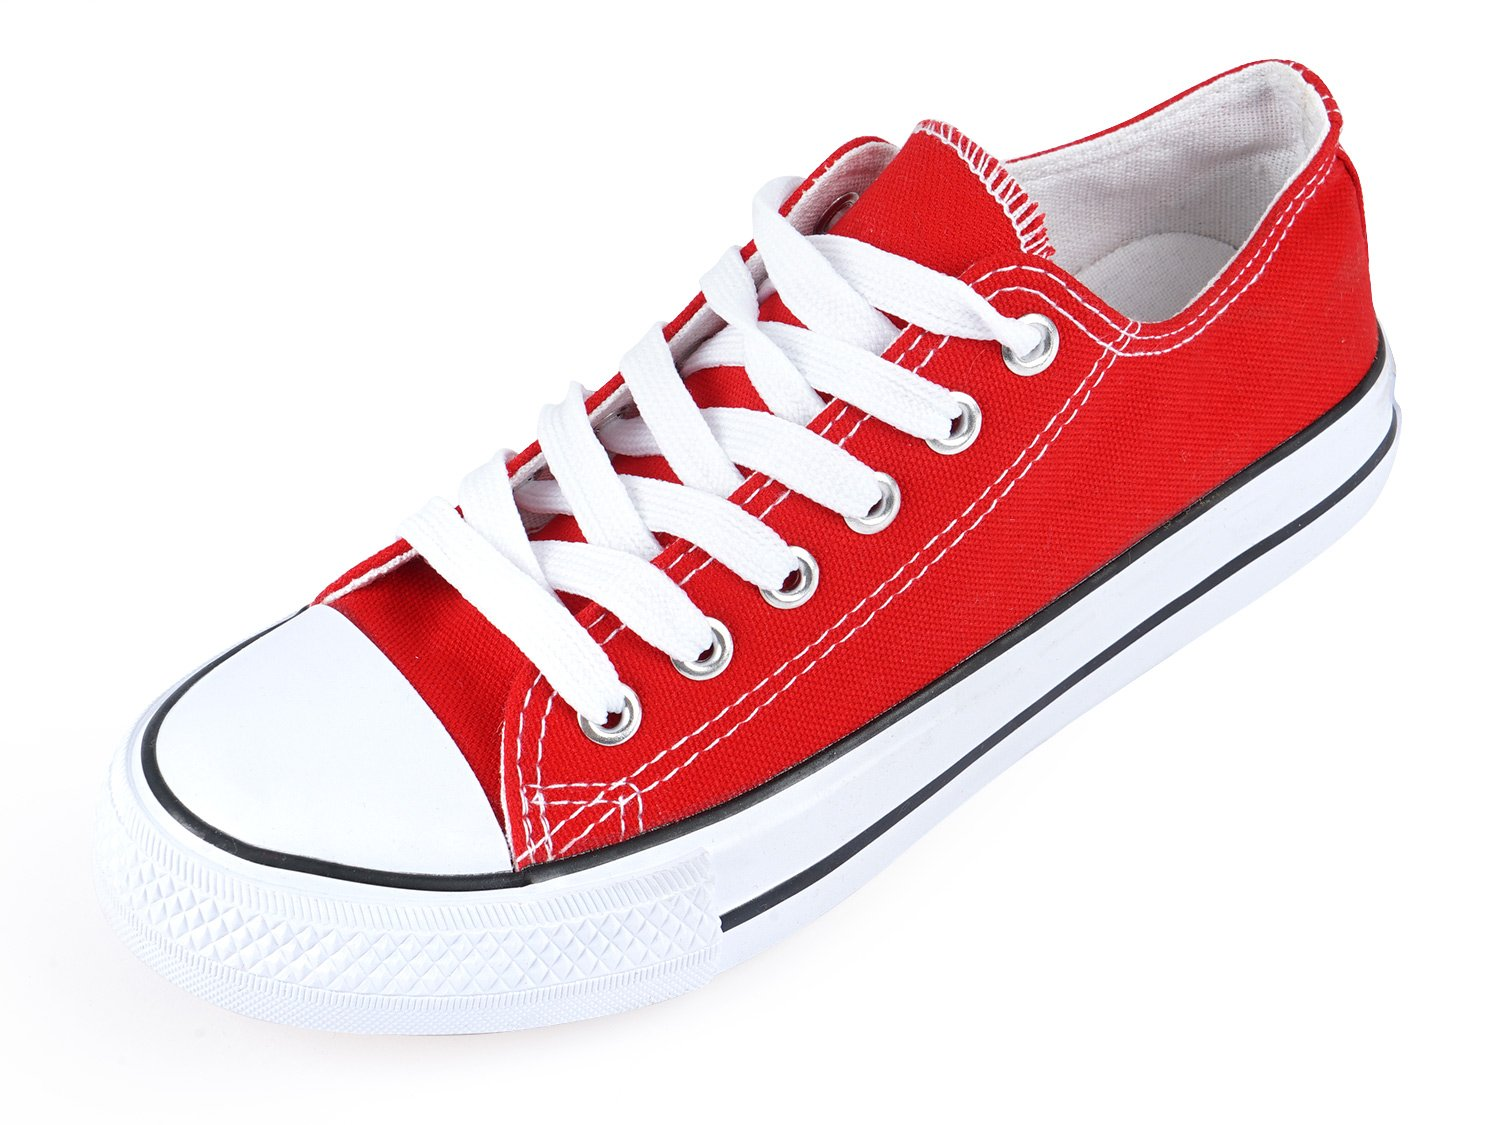 SUNJIN ARCO Women's Fashion Lace up Sneaker Low Top Canvas Shoes (Red,7.5 B(M) US)